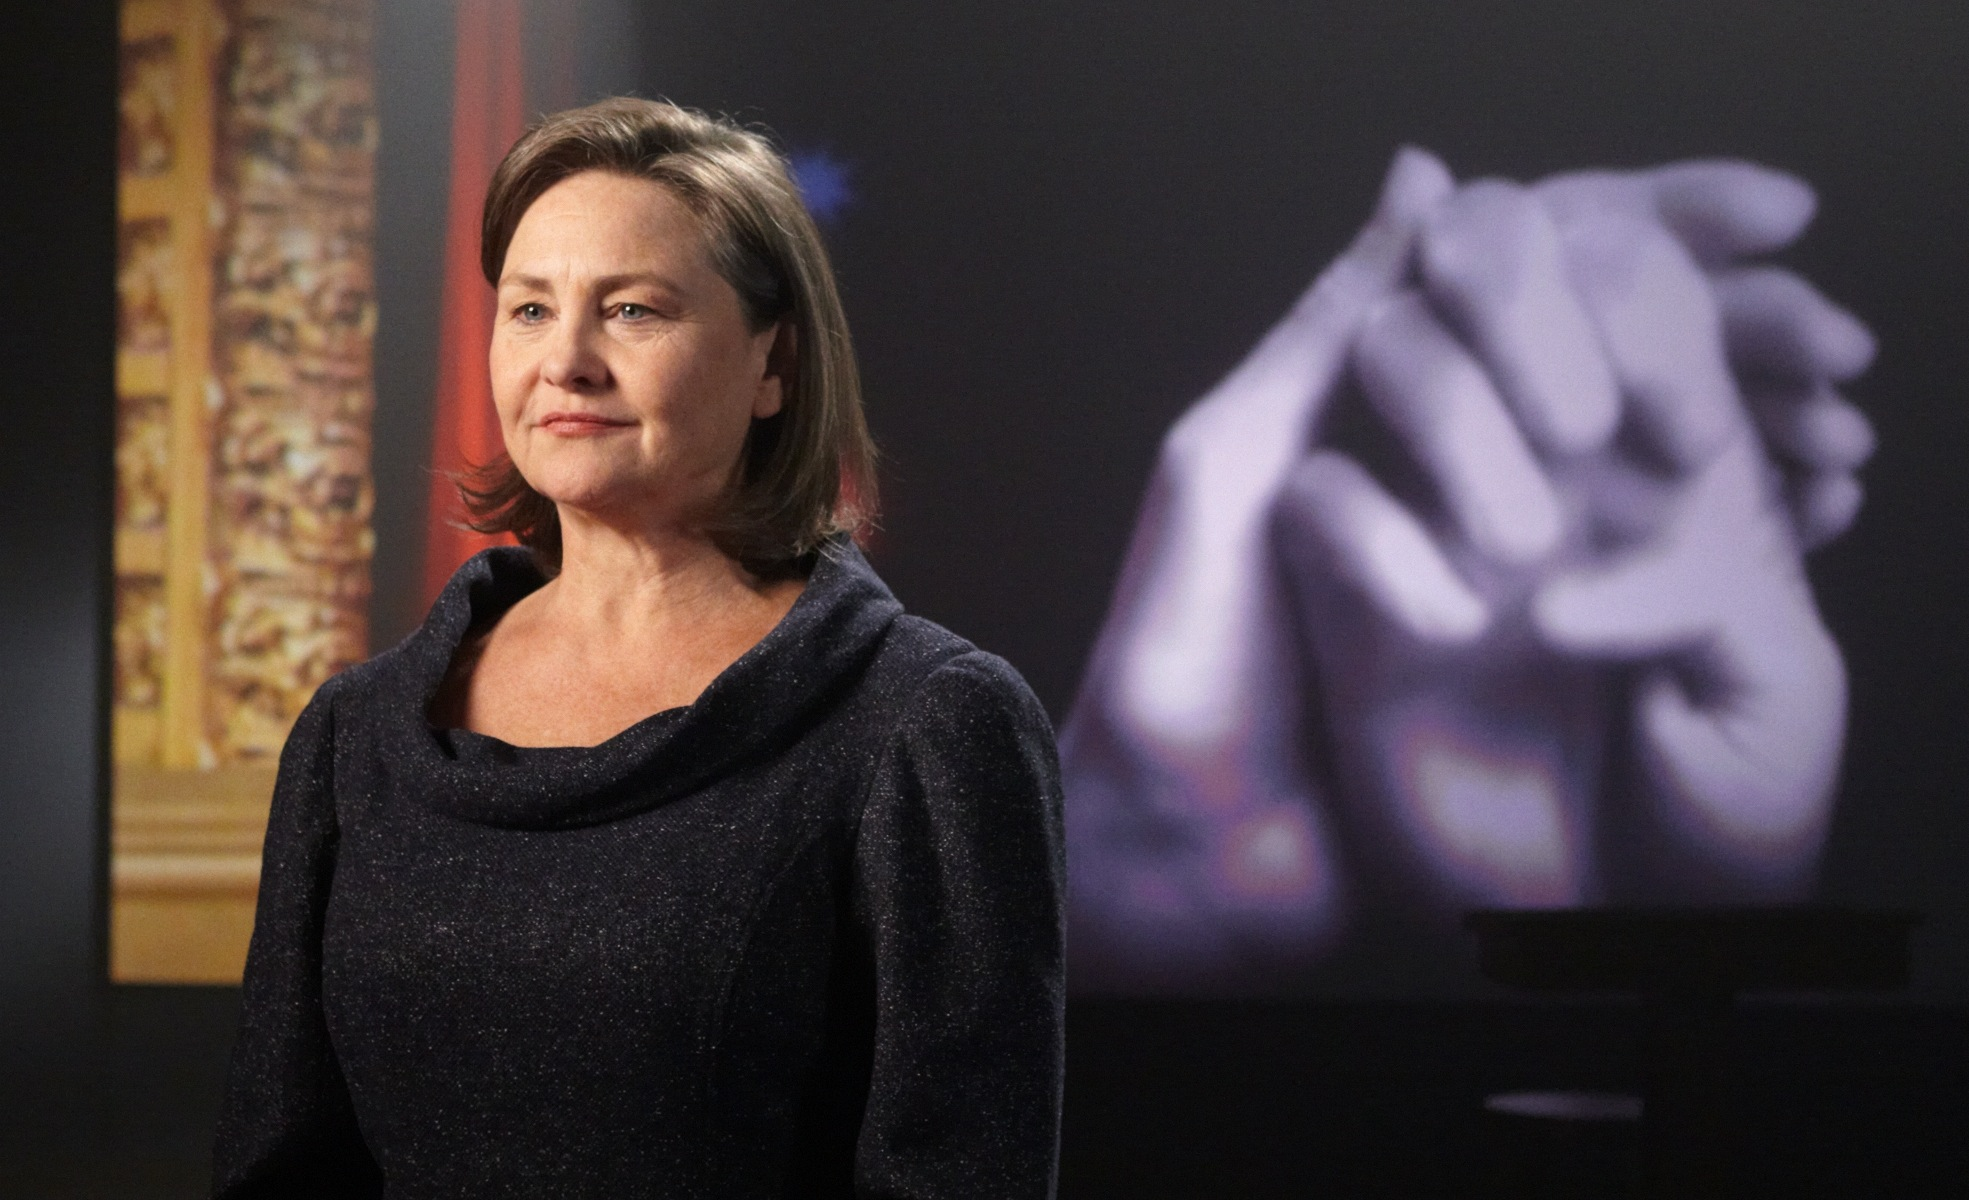 Cherry Jones on the Becoming Helen Keller set, with hands spelling a word in the background.